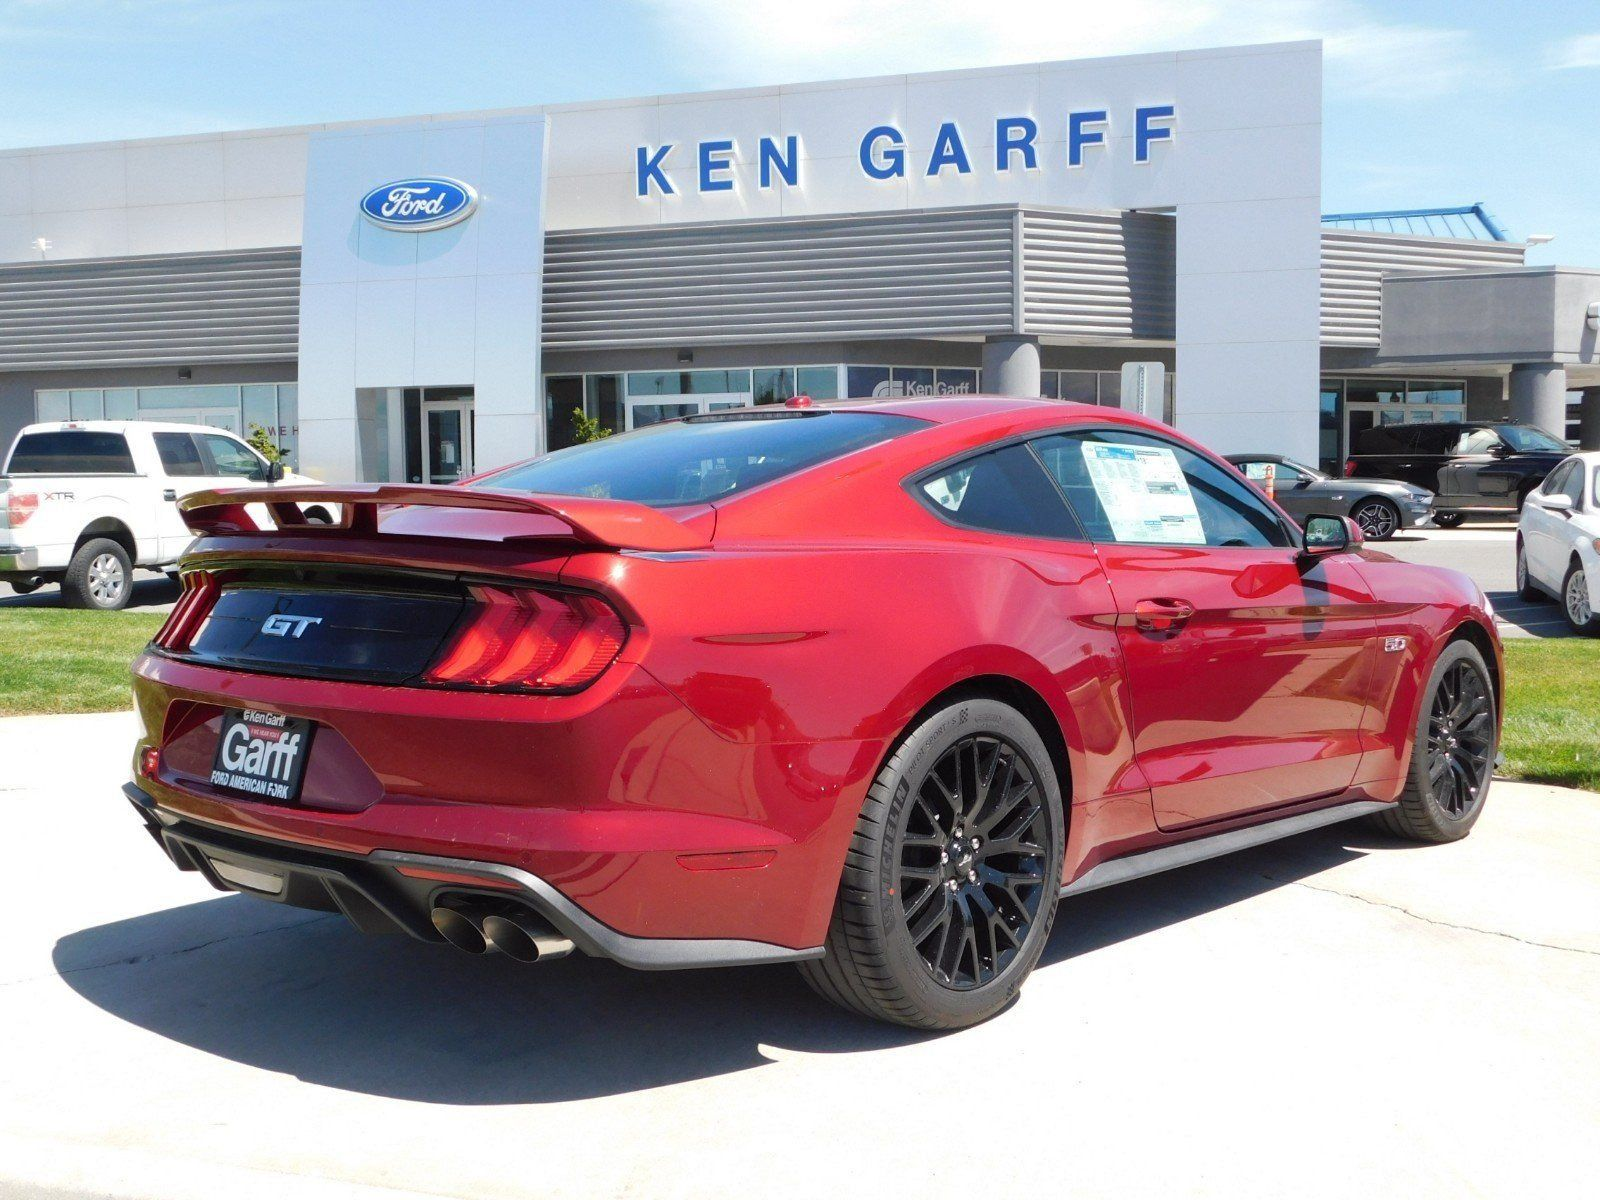 New 2019 Ford Mustang Gt Premium 2dr Car 1f Ford Gt Super Cars